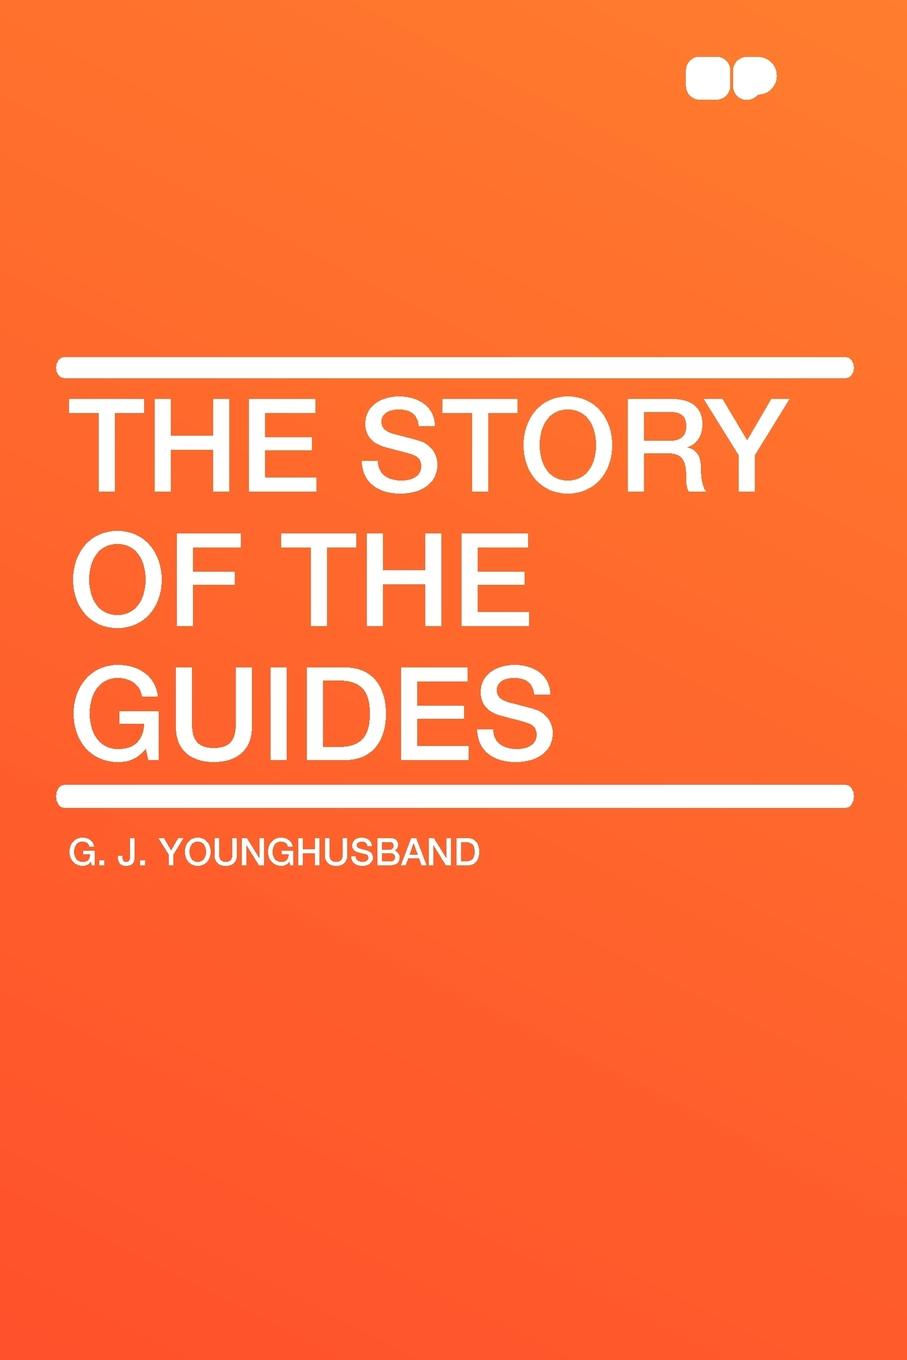 G. J. Younghusband The Story of the Guides insight guides scotland